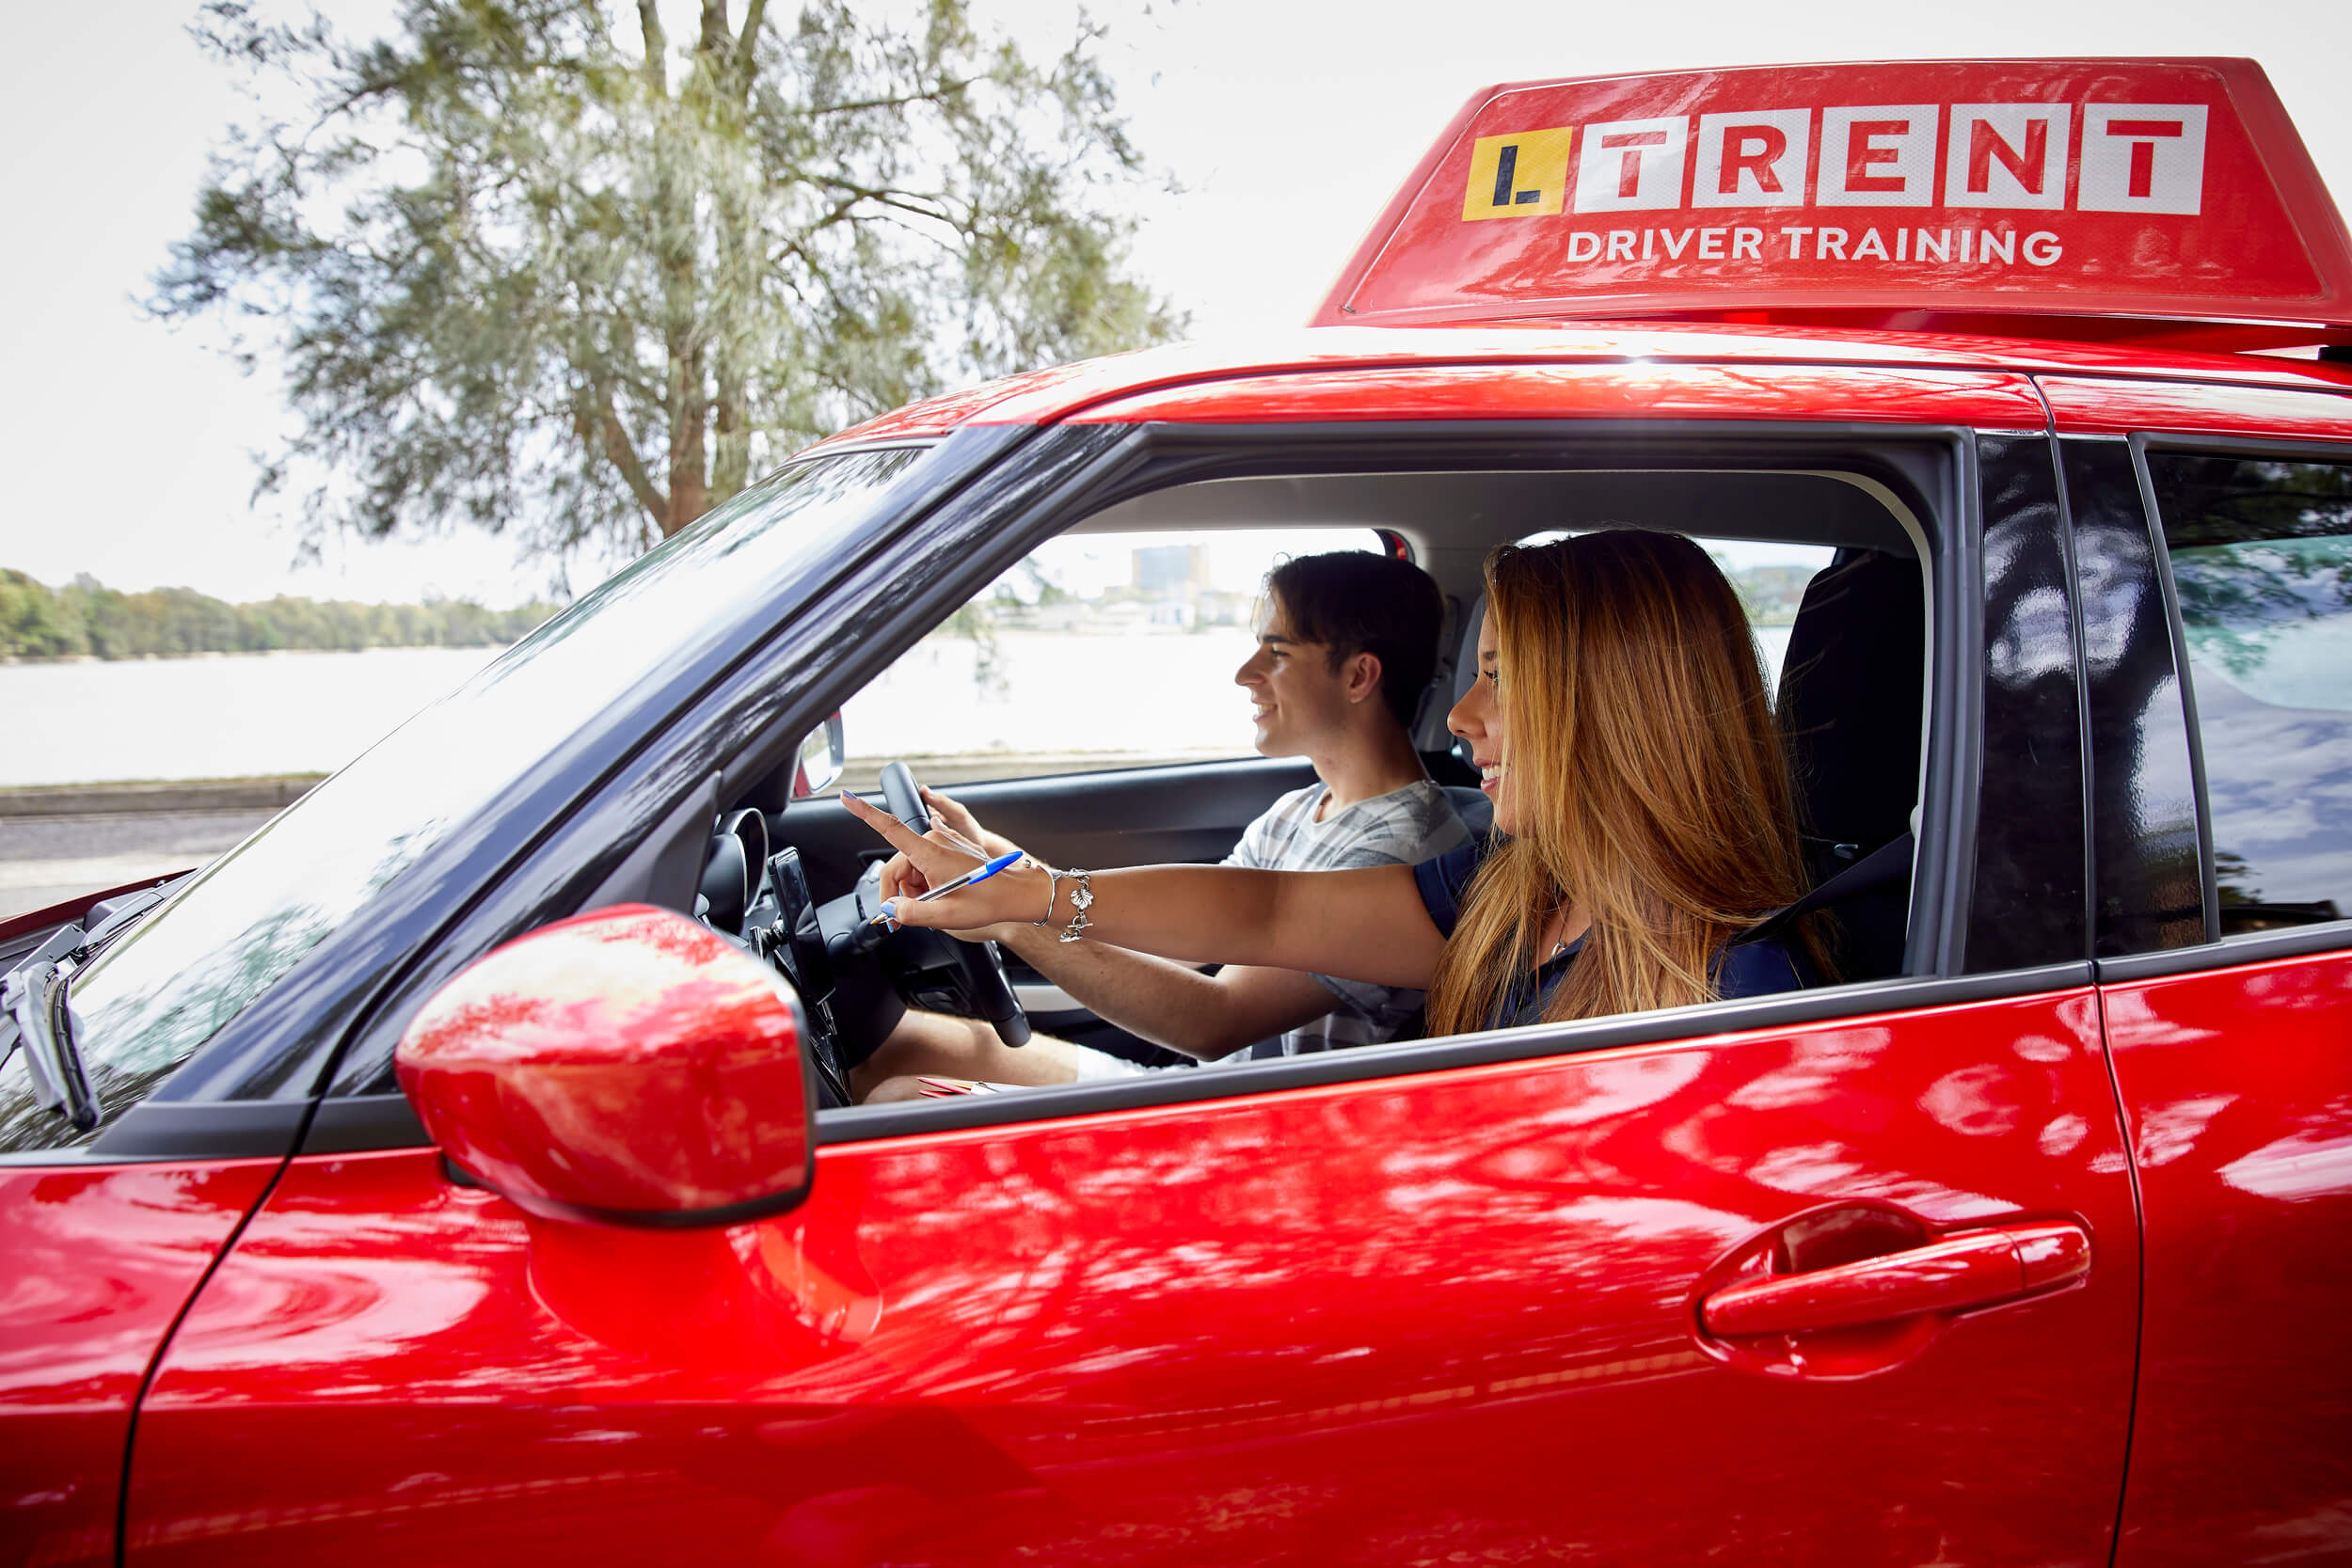 How Many Driving Lessons Do I Need To Pass | LTrent Driving School